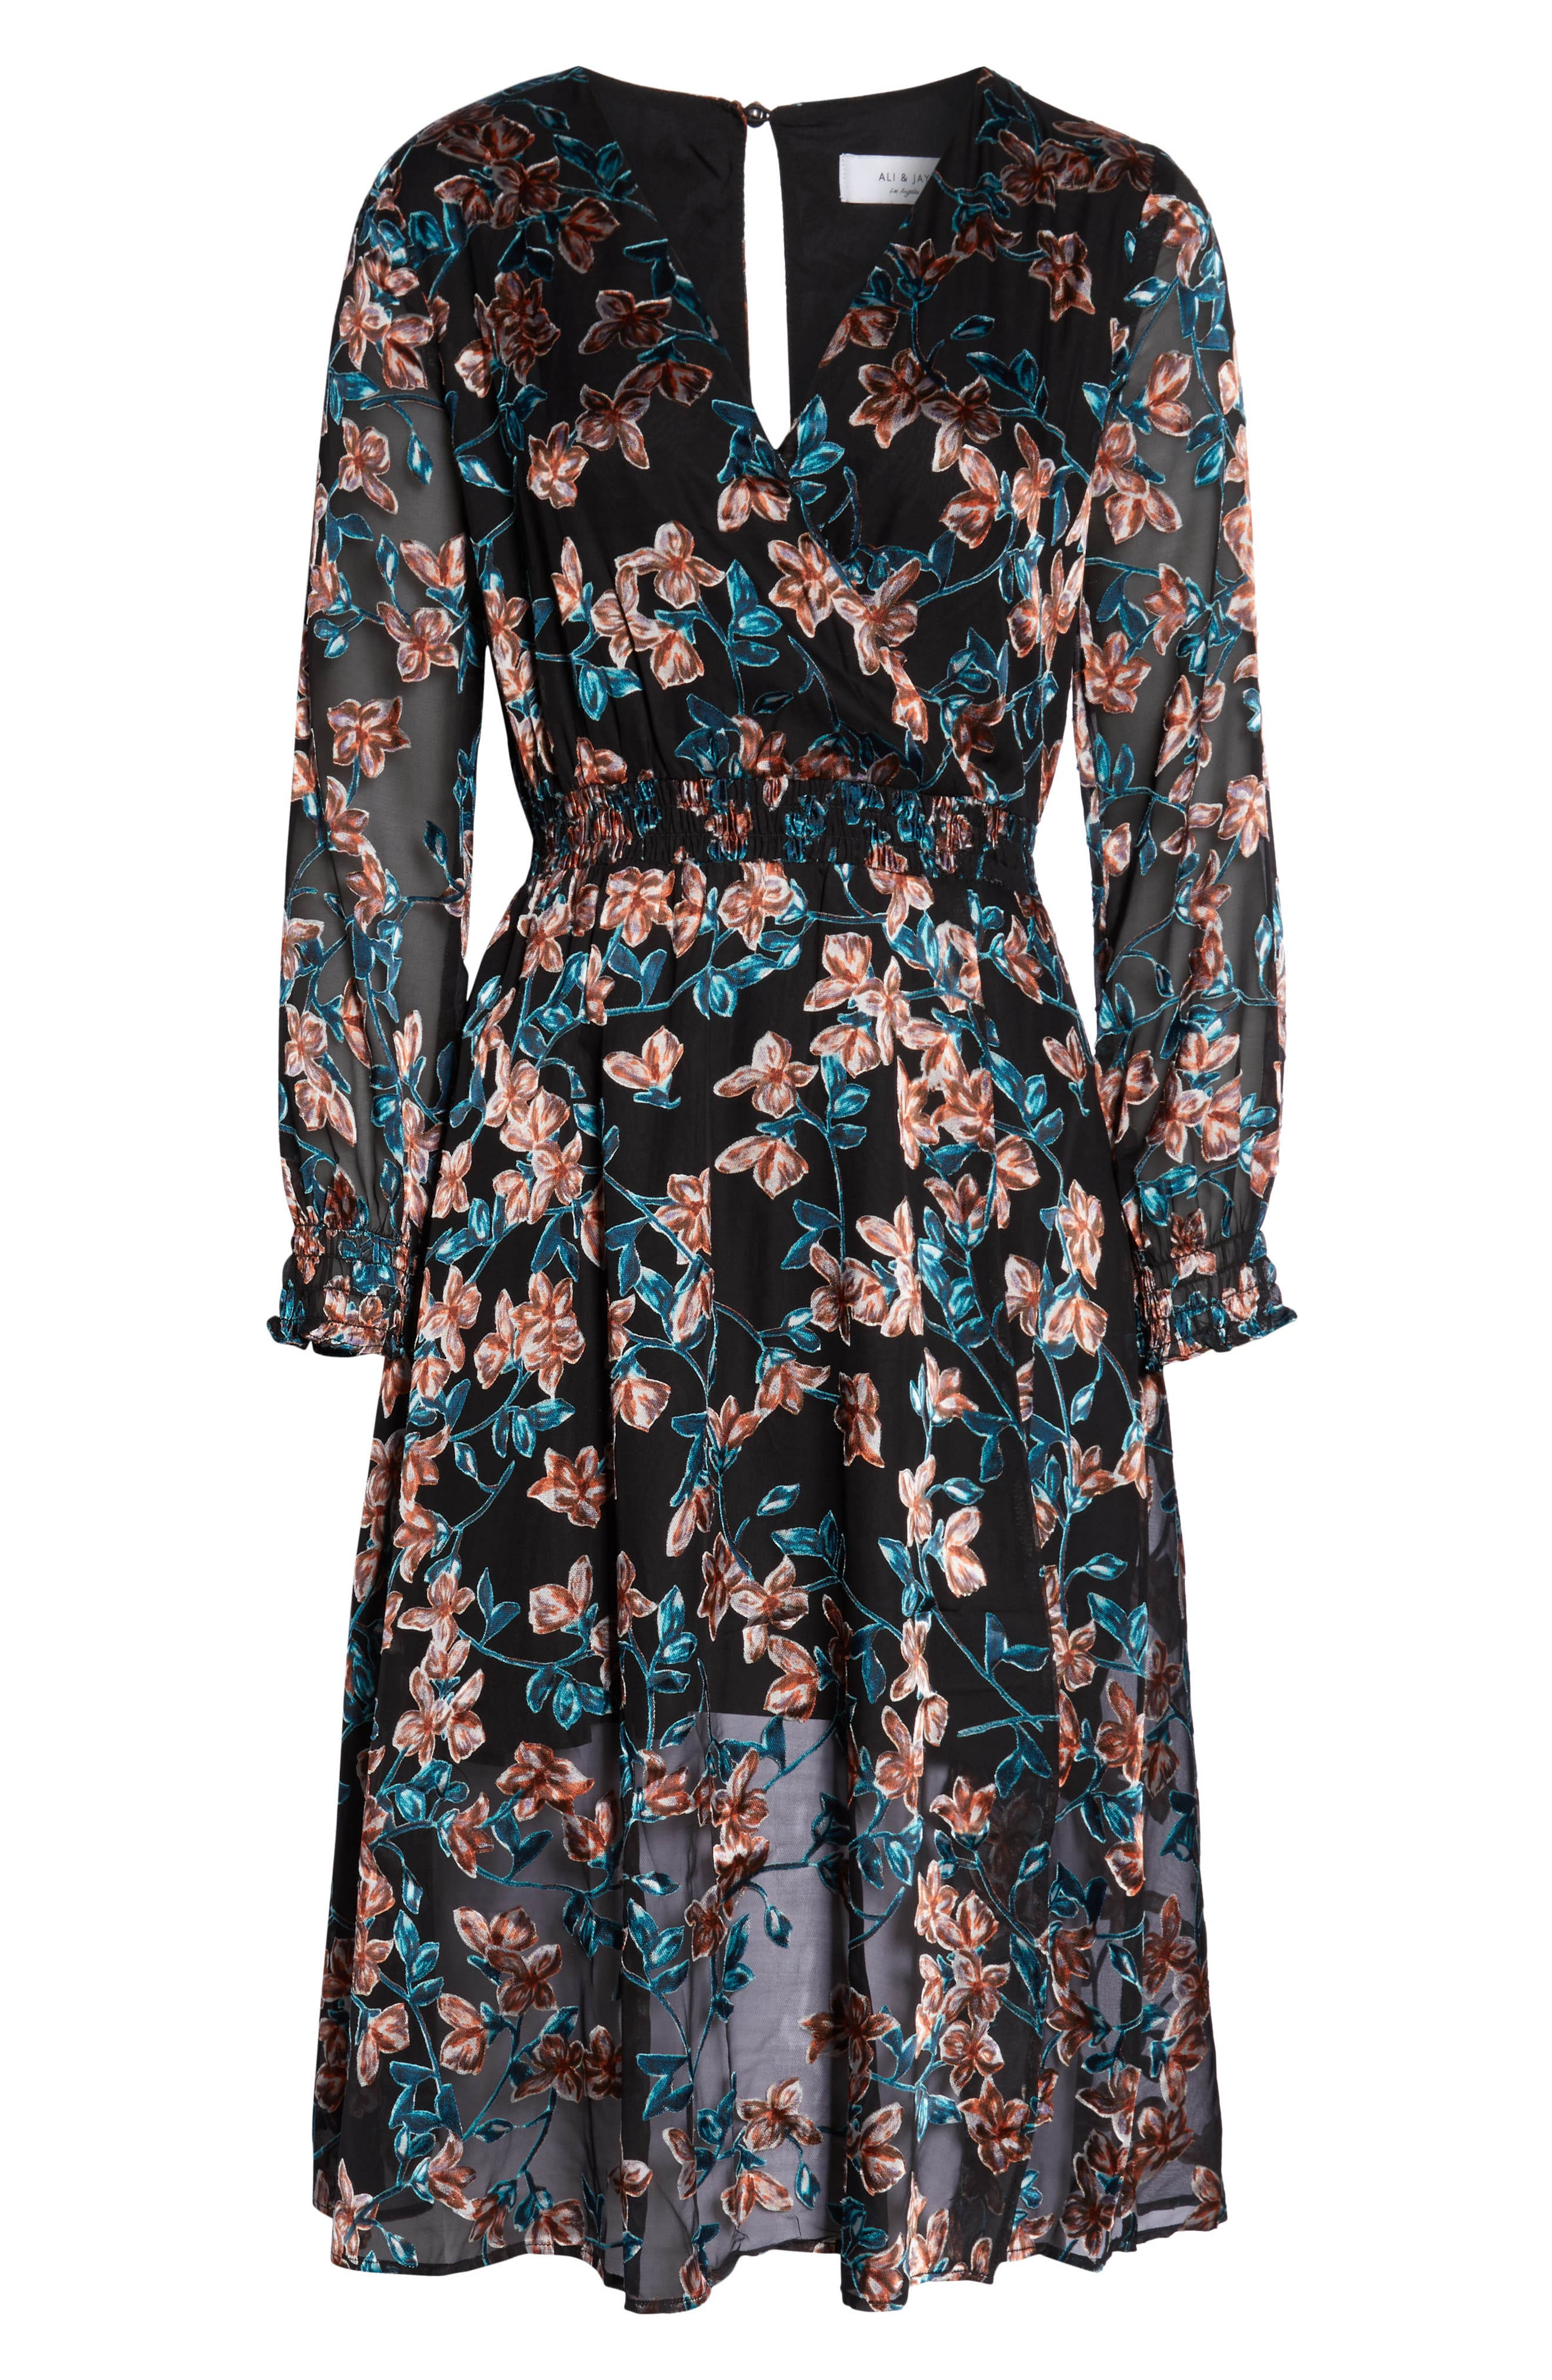 ALI & JAY, Treat Me Like a Lady Floral Dress, Alternate thumbnail 7, color, 001